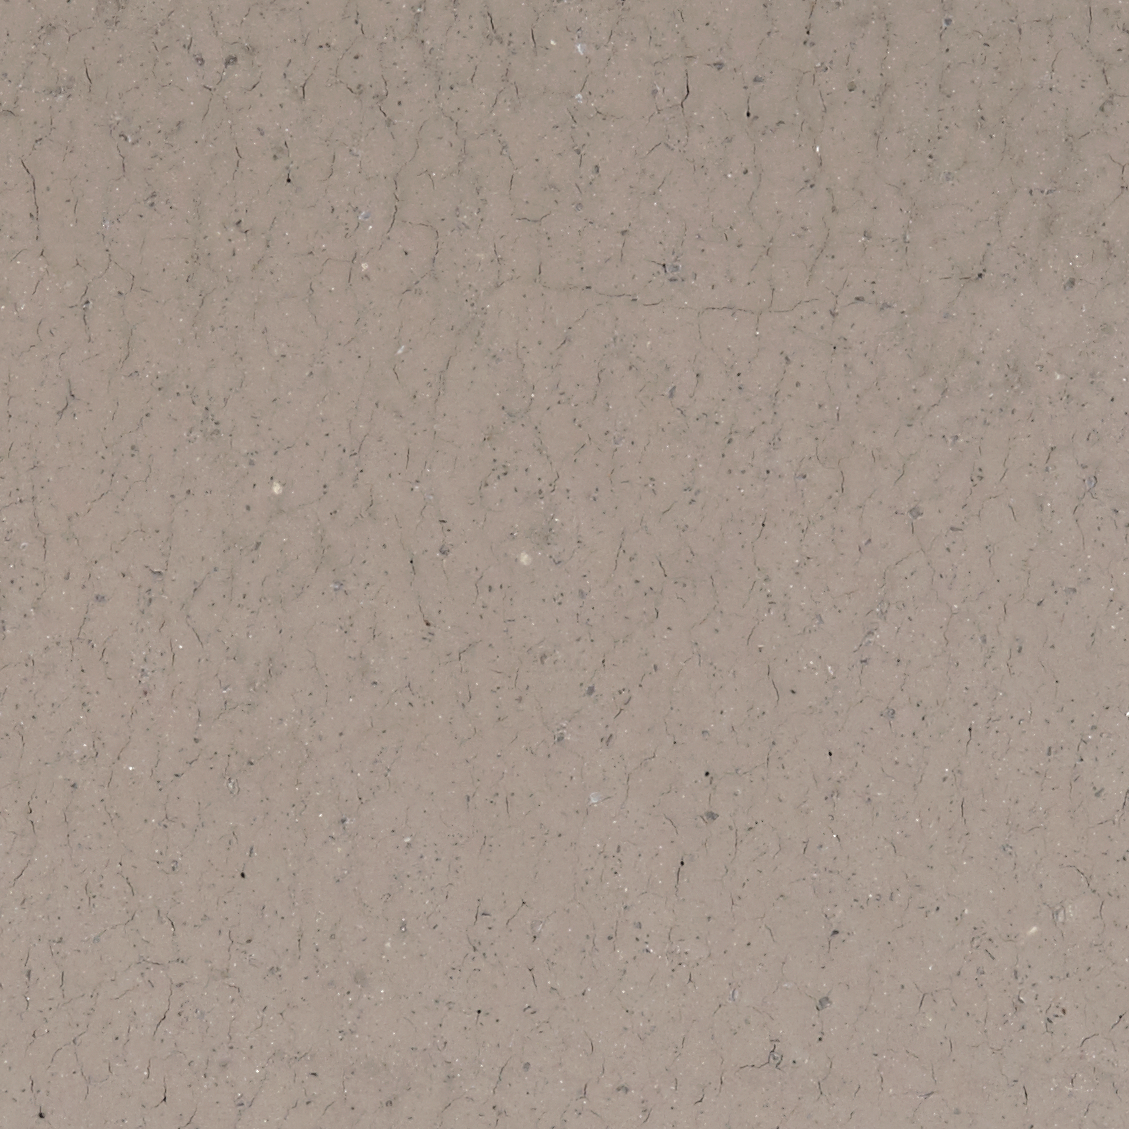 Firenzecolor Marblestone MRBL 807